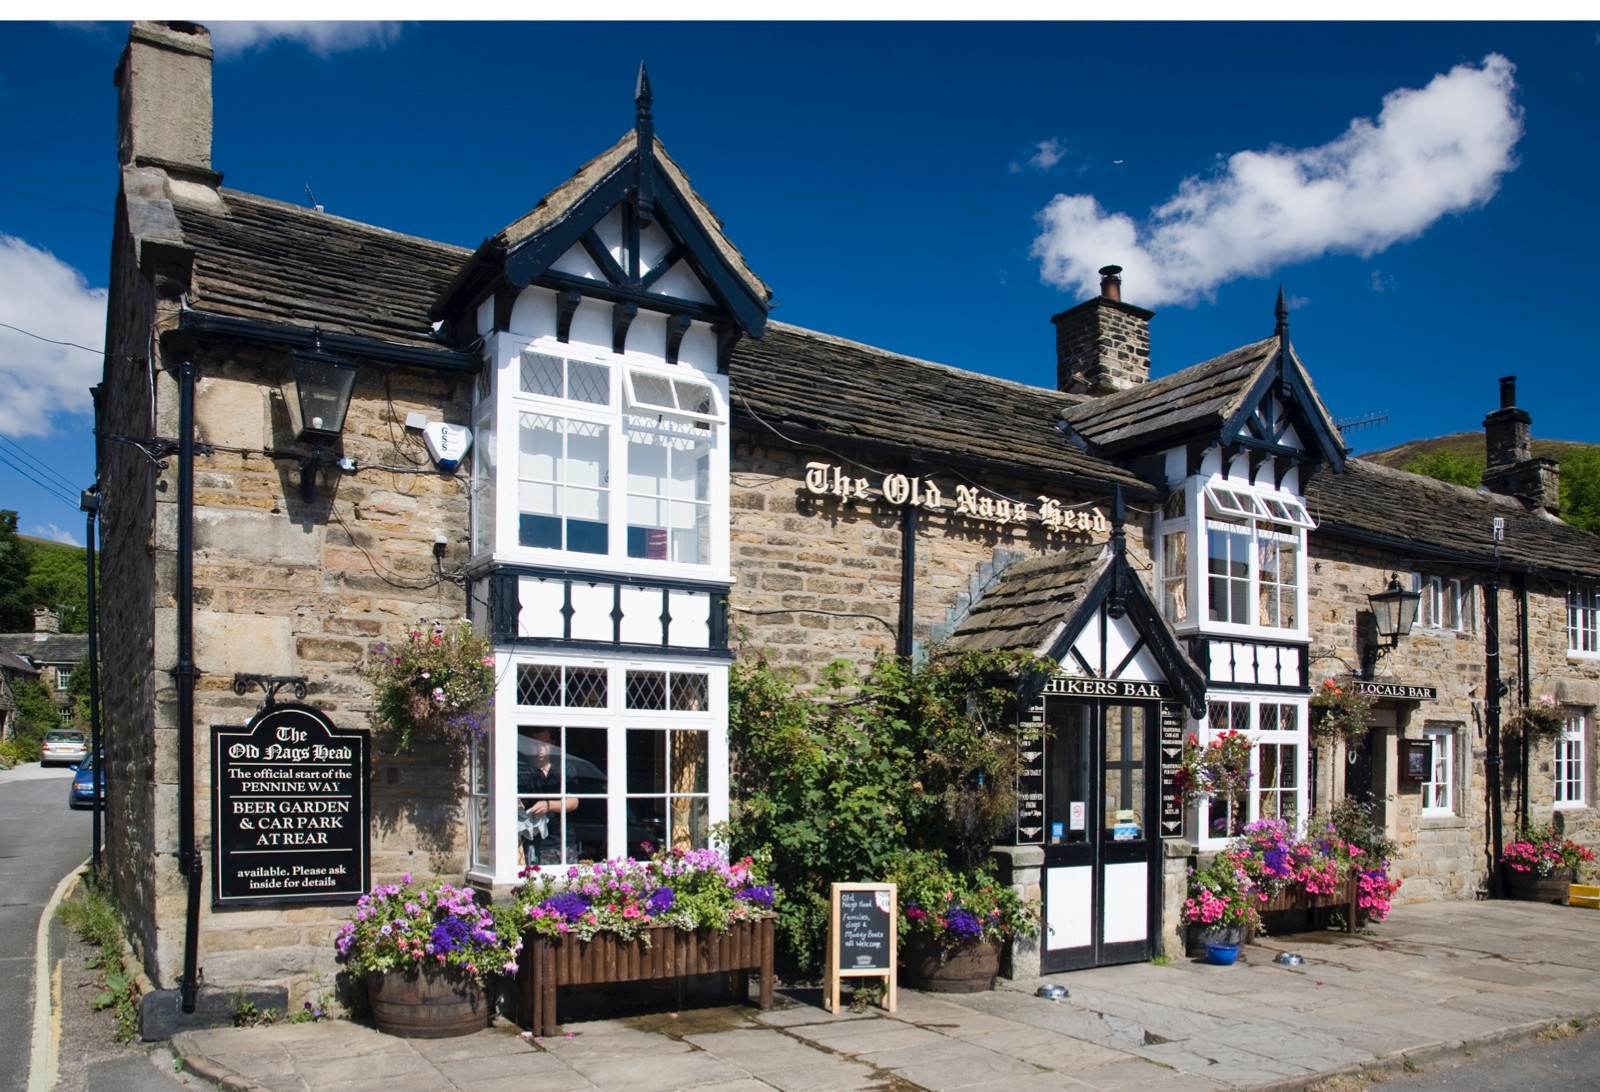 The Old Nags Head, Edale, Derbyshire